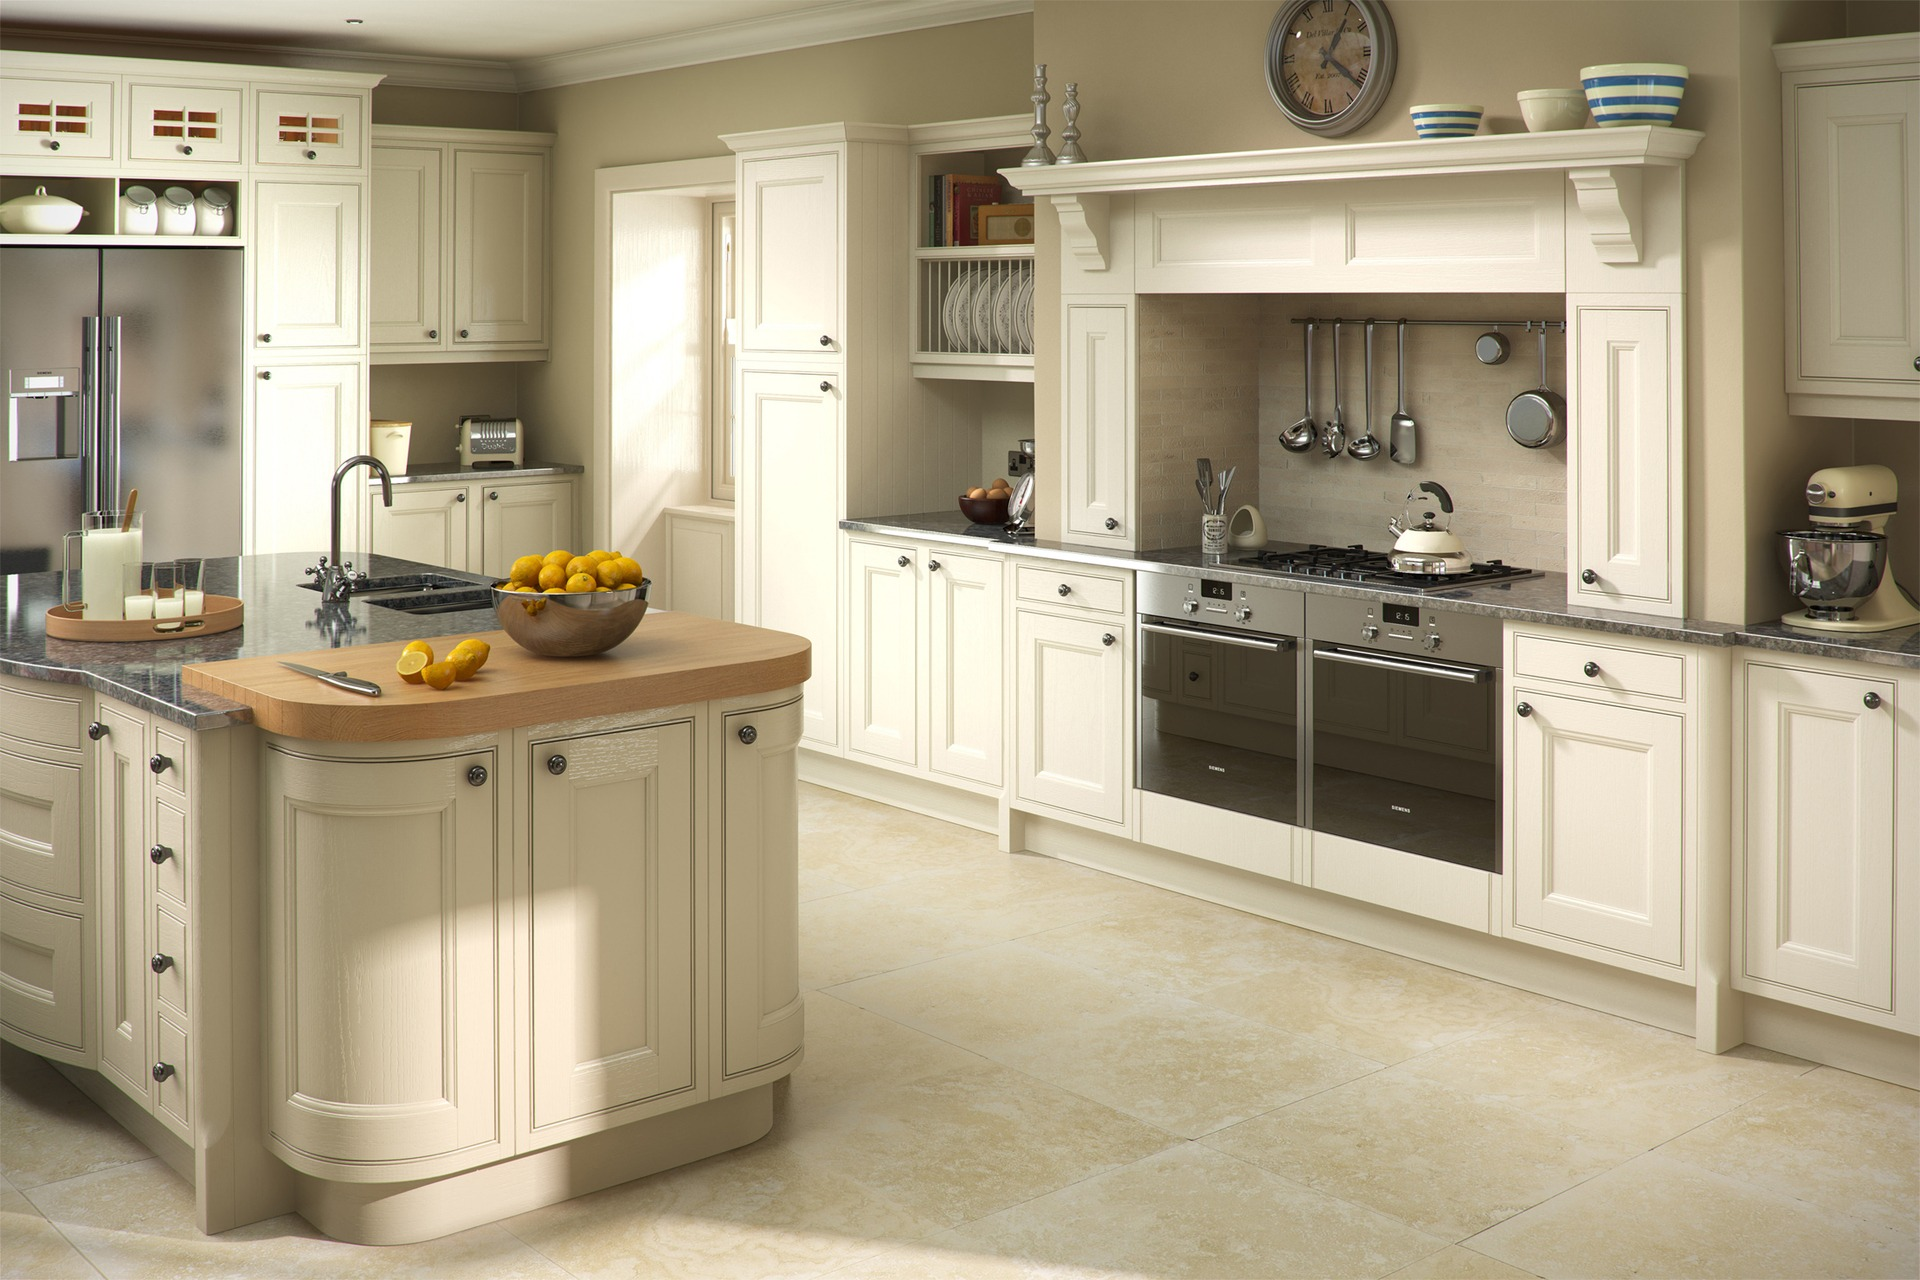 wel e to orchard kitchens ilkeston derbyshire